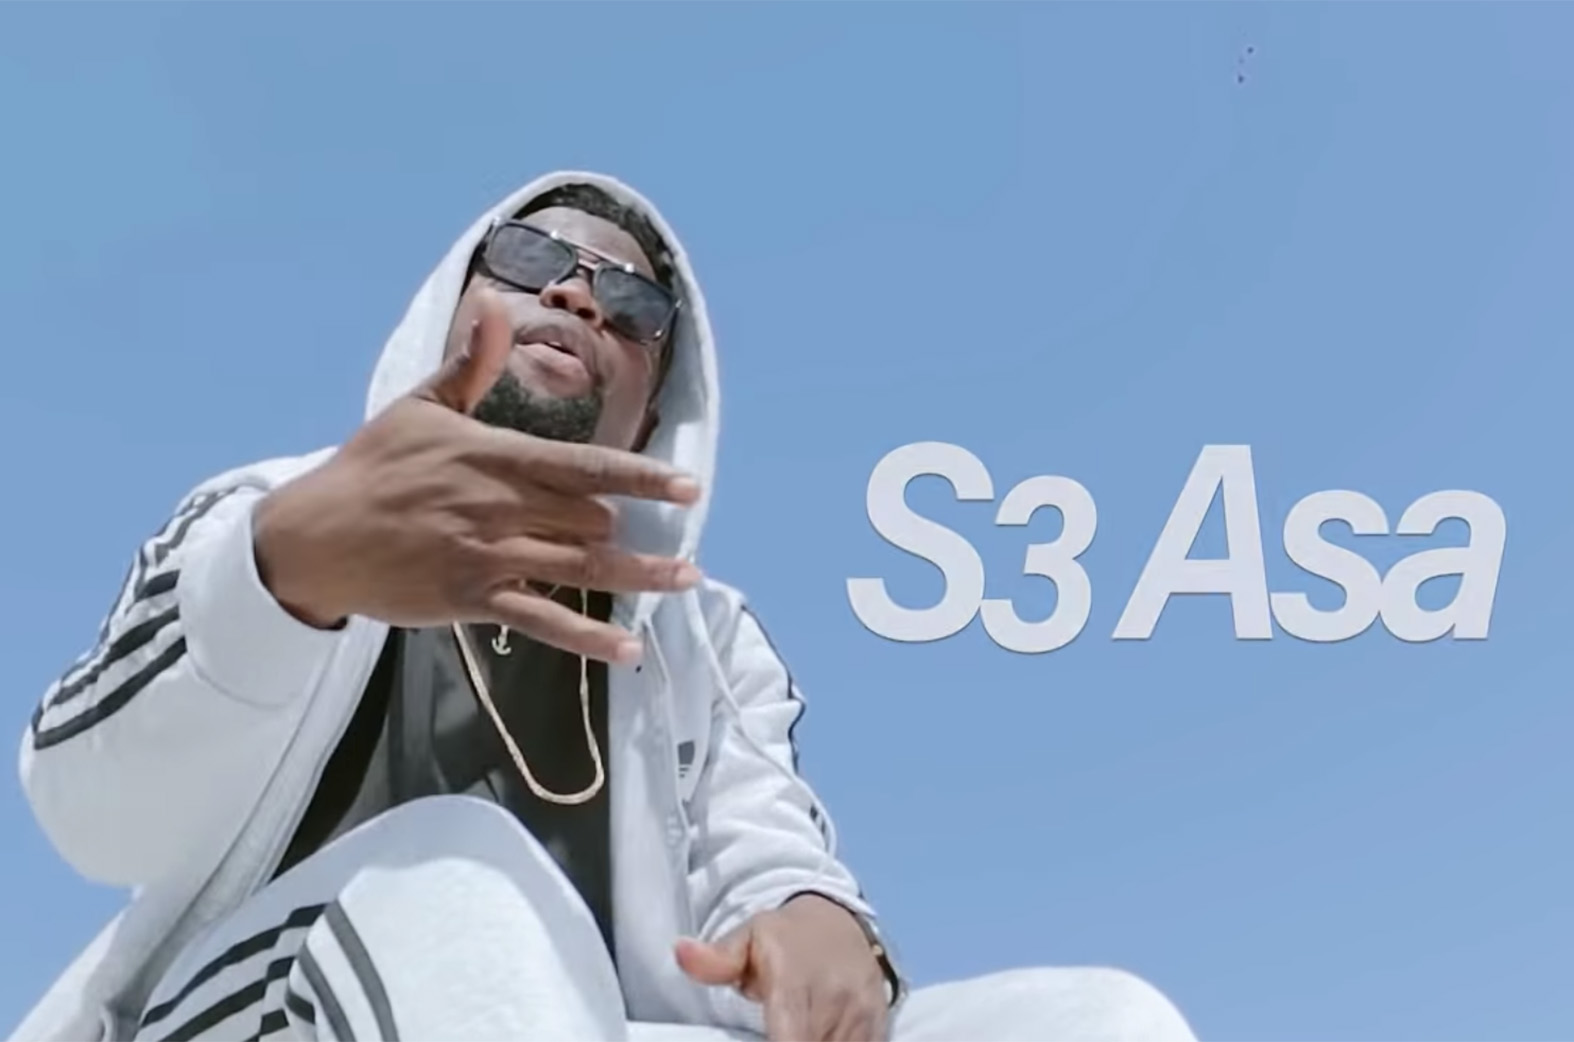 Video Premiere: S3 Asa by Nero X